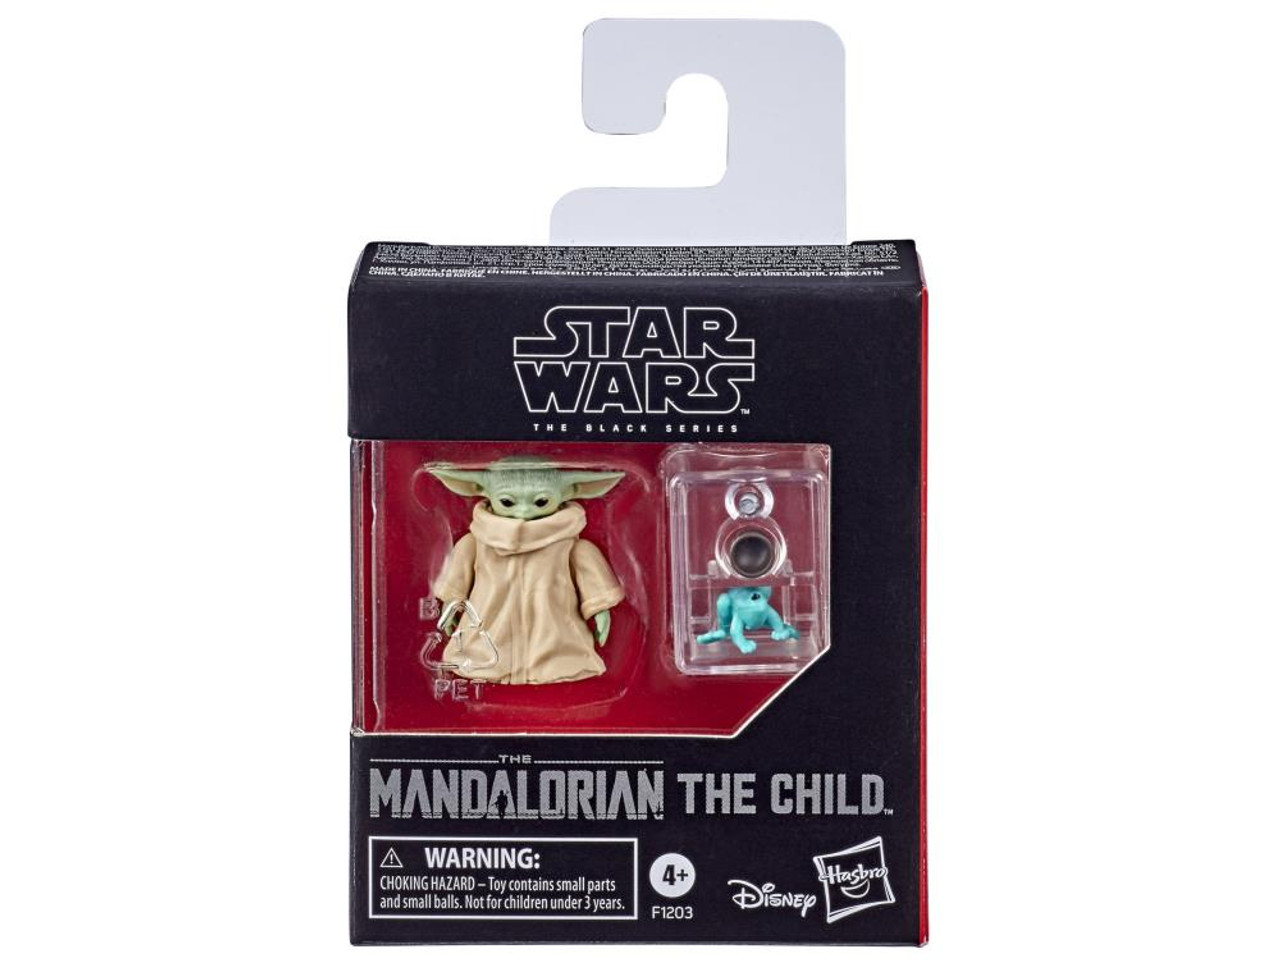 Star Wars ~ The Black Series ~ The Mandalorian ~ The Child Action Figure